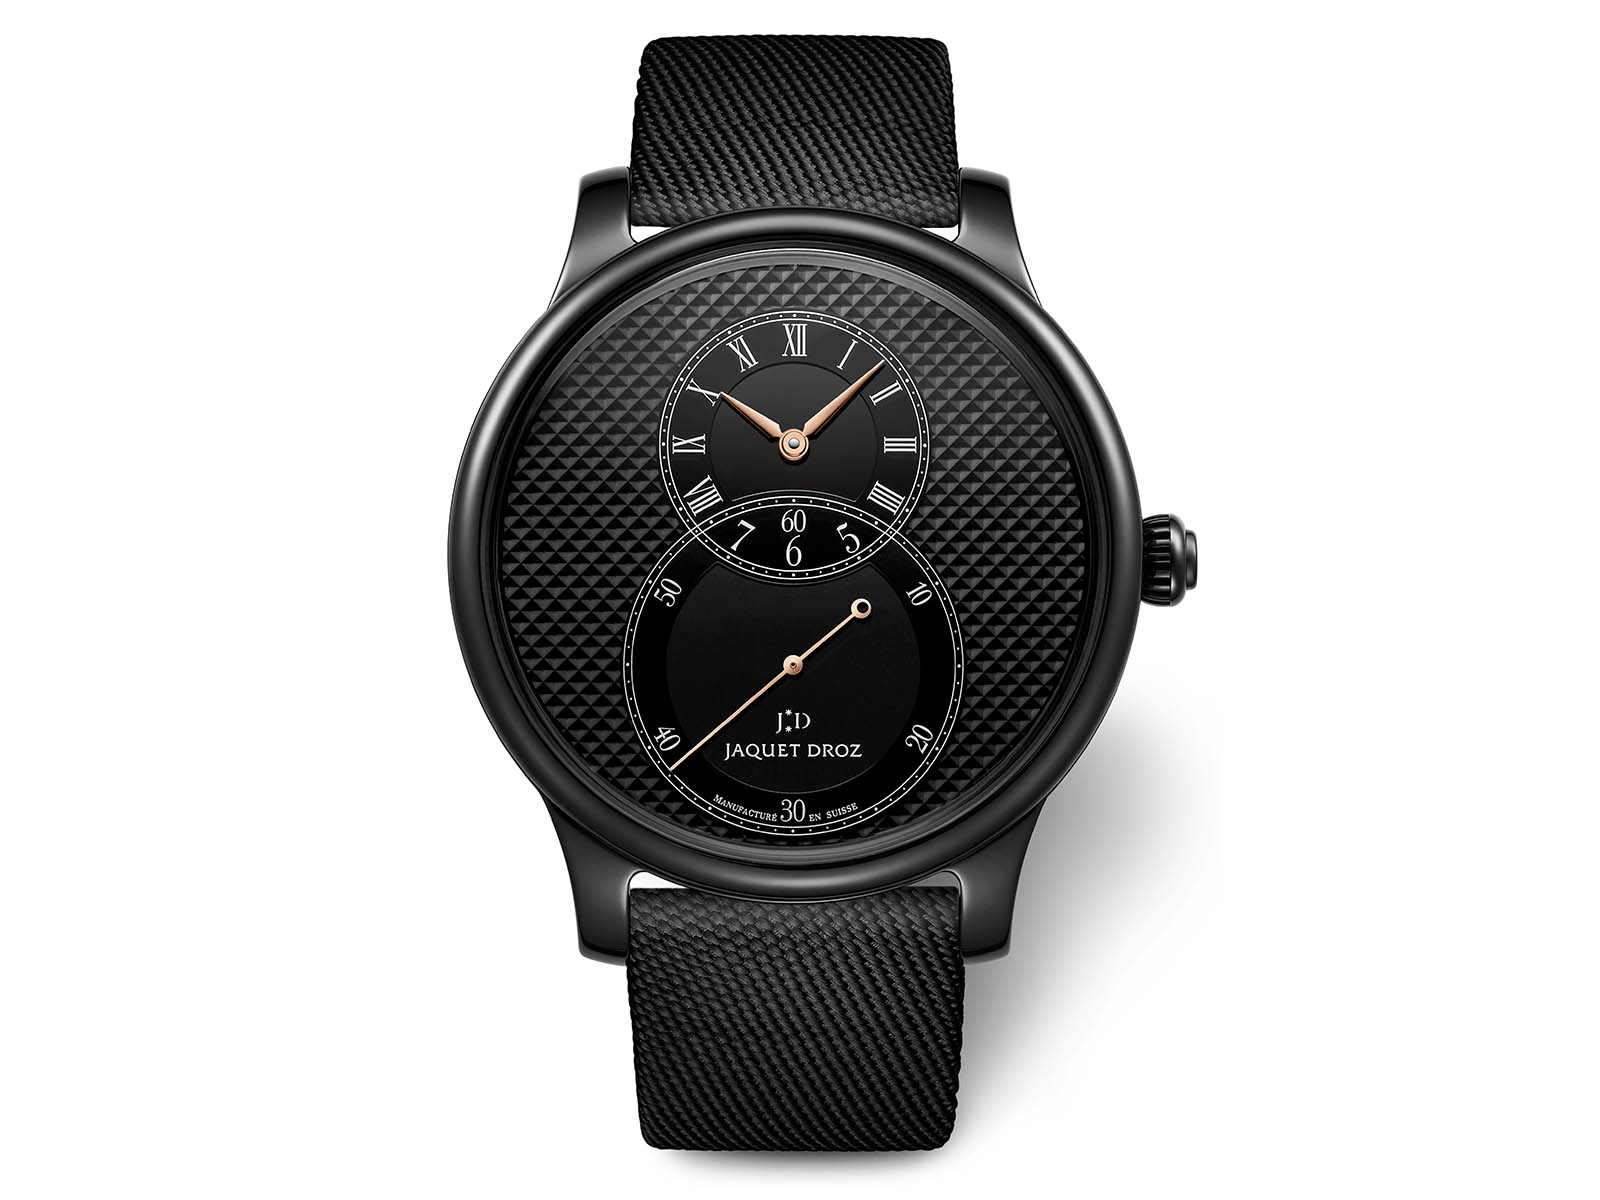 Jaquet-Droz-Grande-Seconde-Black-Ceramic-Clous-De-Paris-3.jpg